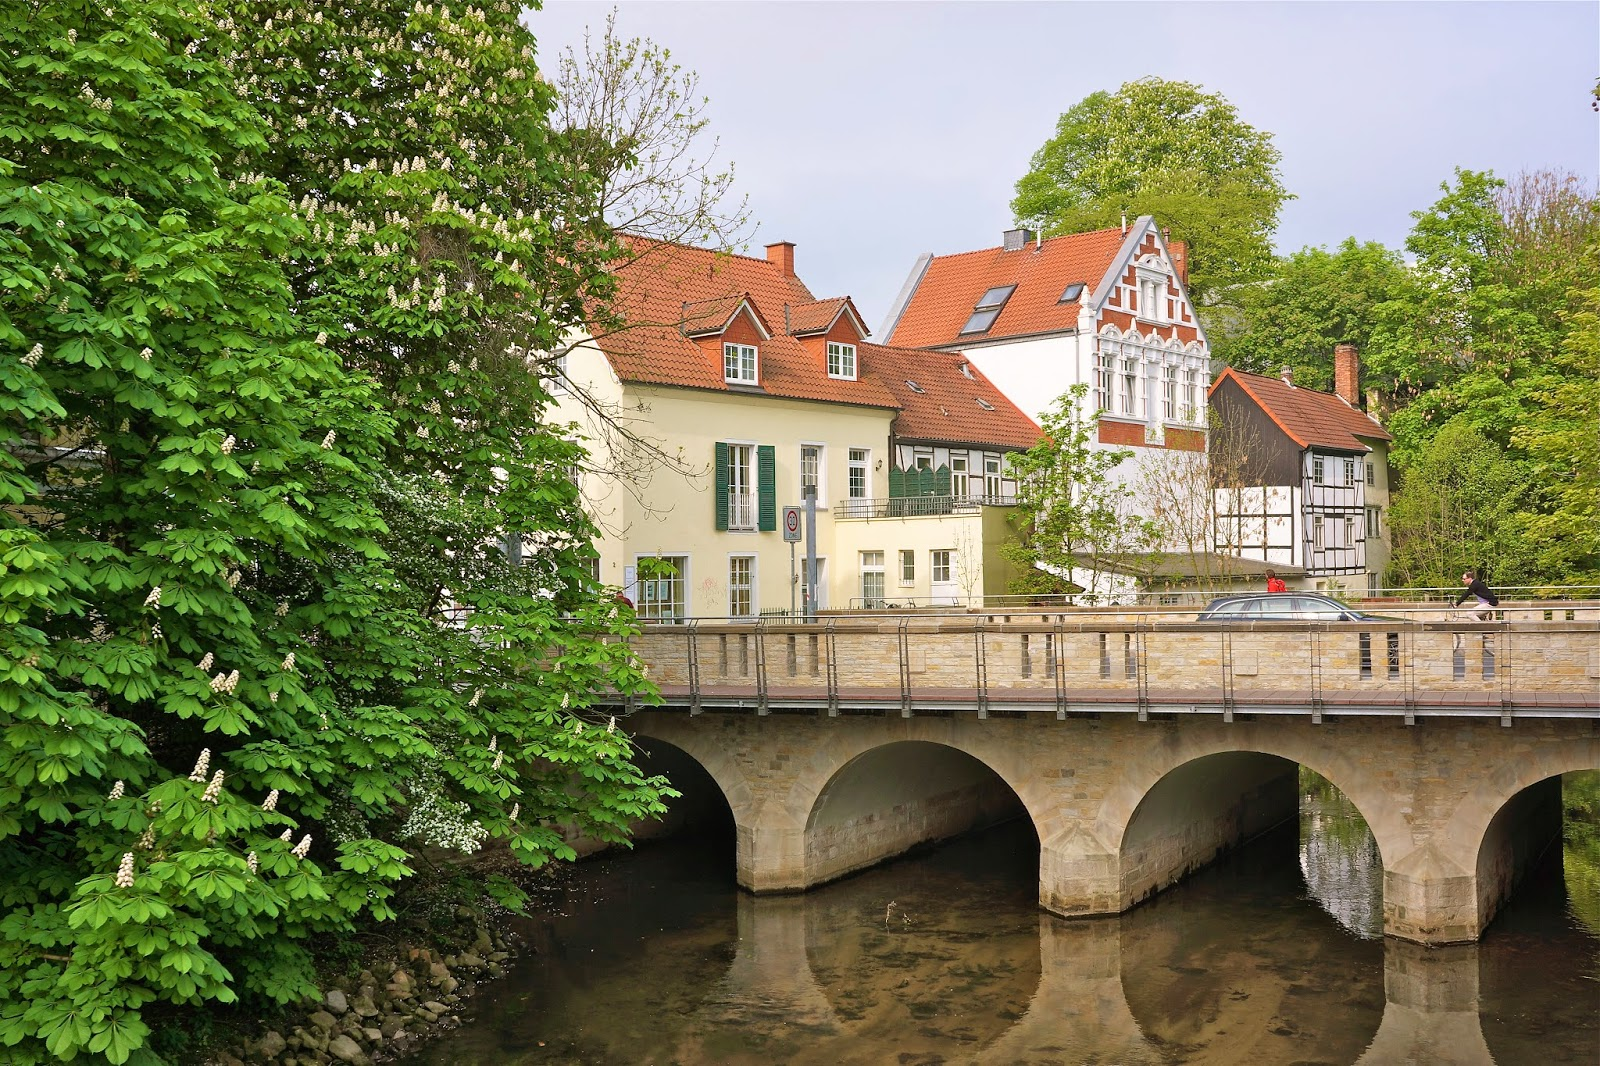 Picture of the old town of Osnabrück, Germany.